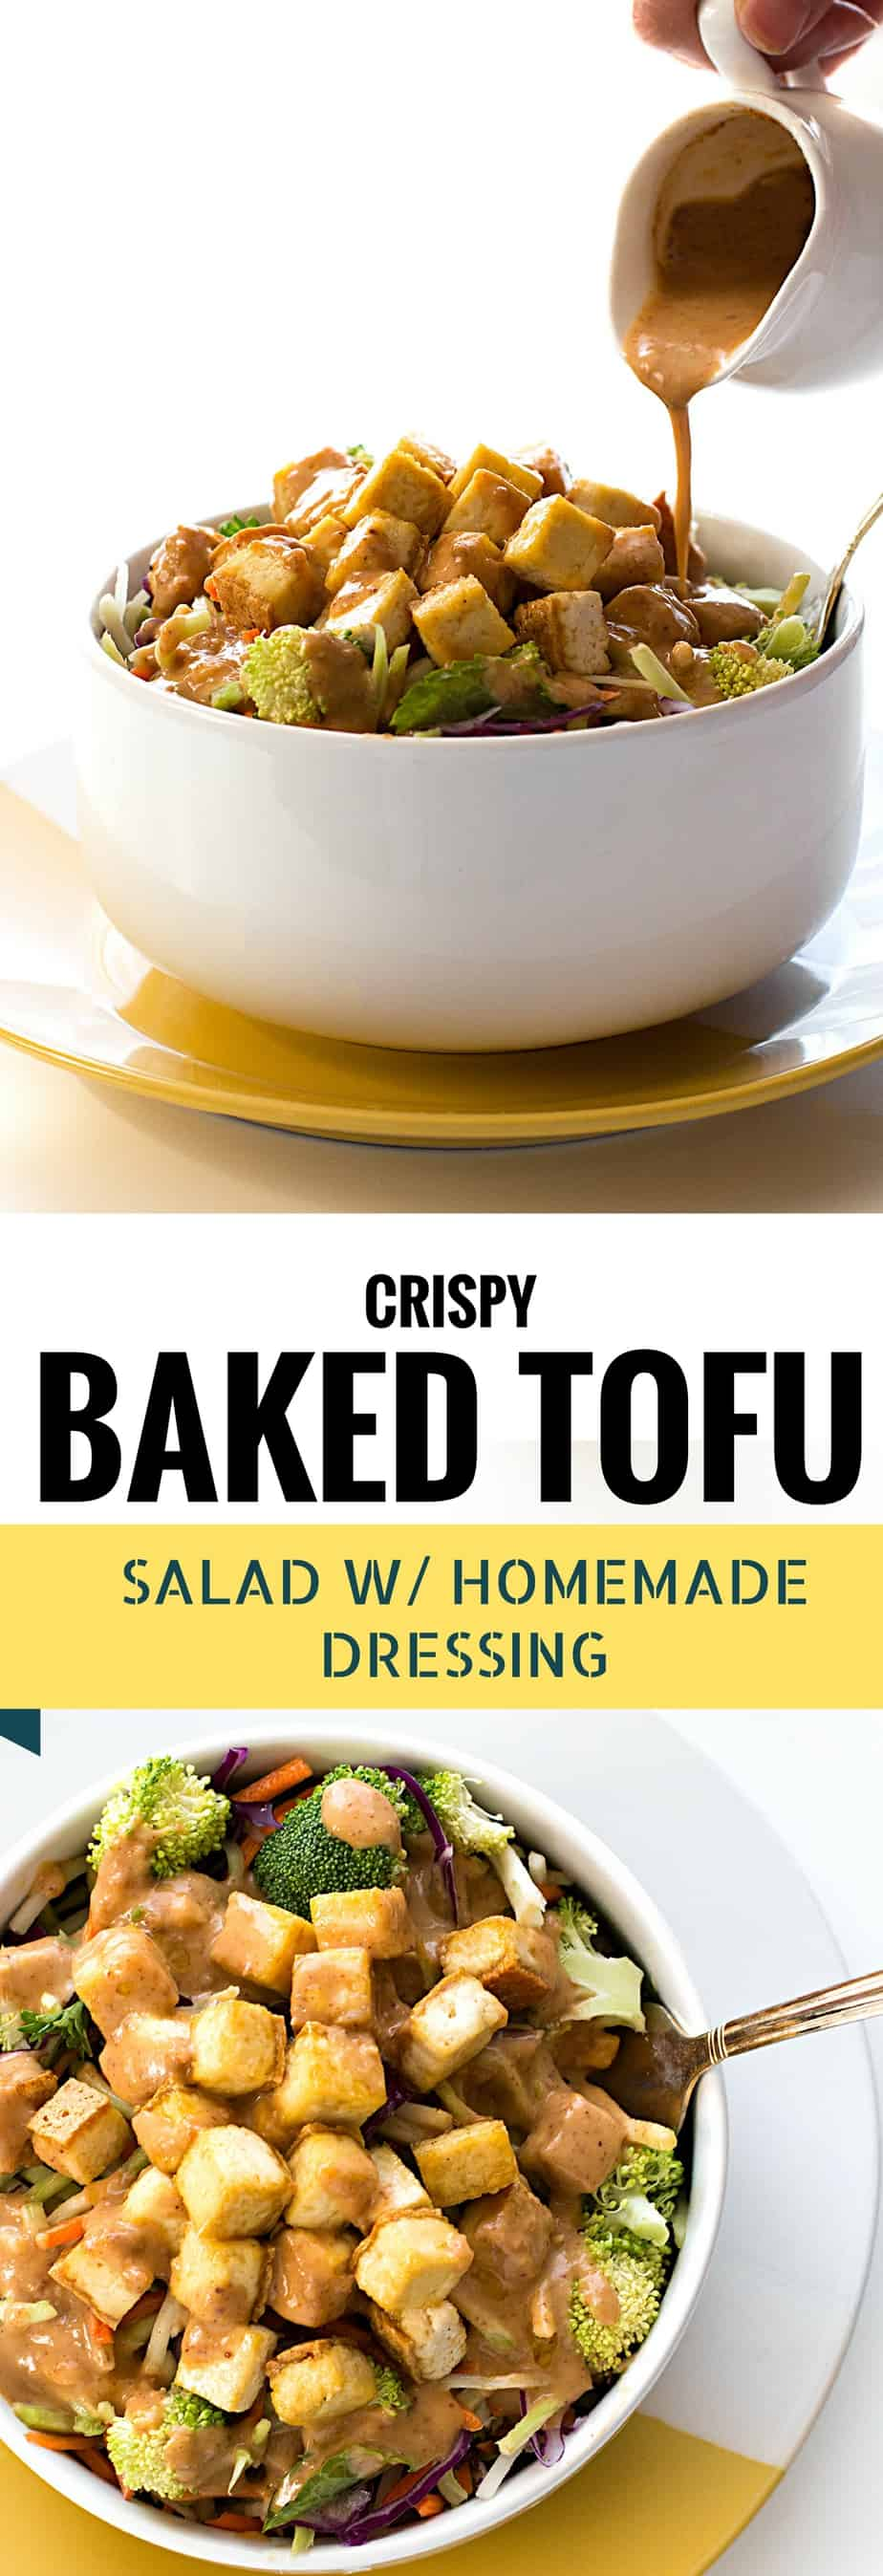 baked tofu with homemade thai salad dressing. Bake without greasy oil, less calorie, packed with protein, quick easy lunch or dinner salad.